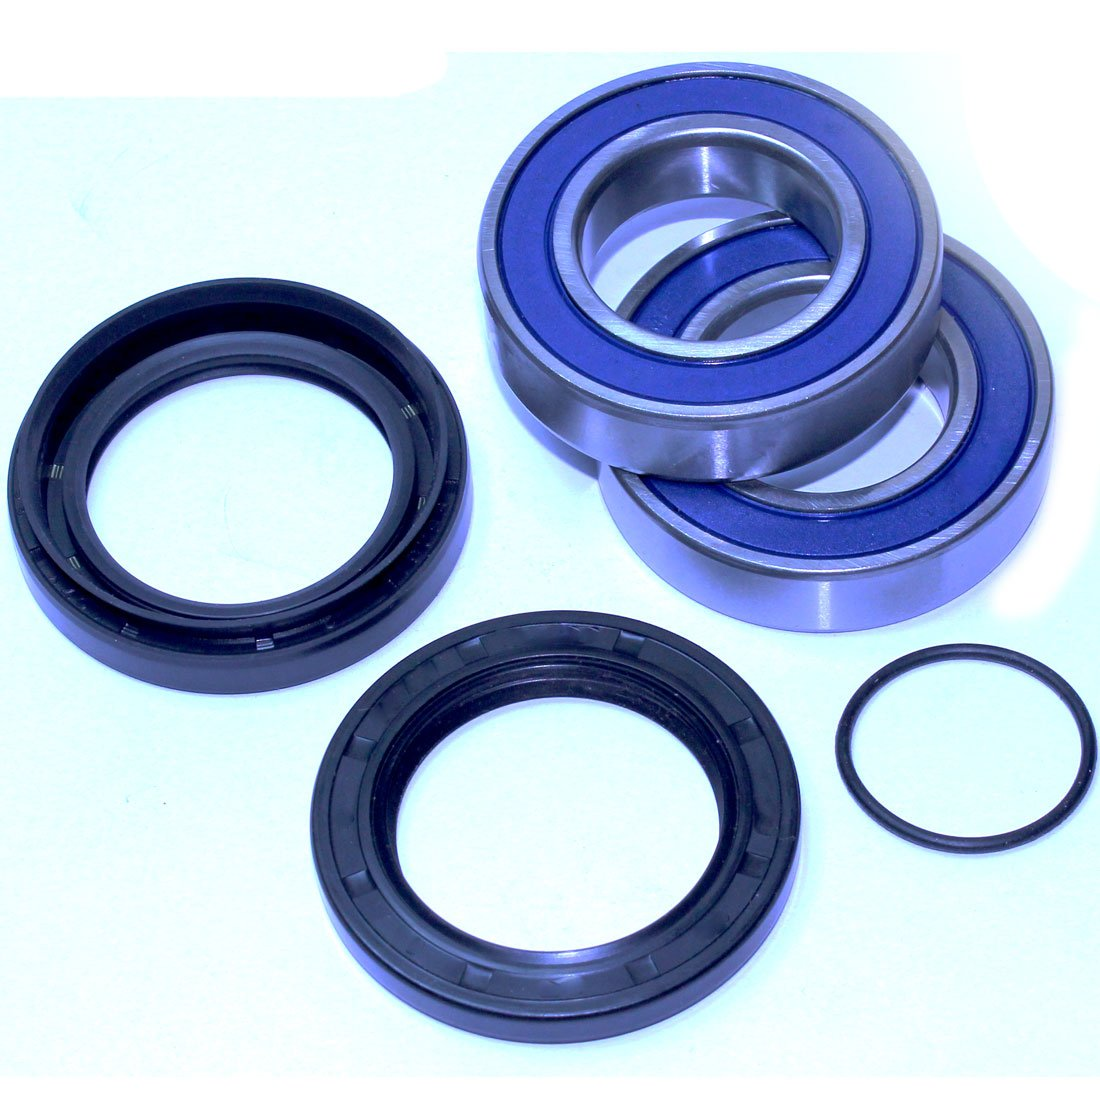 Caltric FRONT WHEEL BALL BEARINGS & SEALS KIT Fits YAMAHA GRIZZLY 350 YFM350 2WD 2007-2011 2014